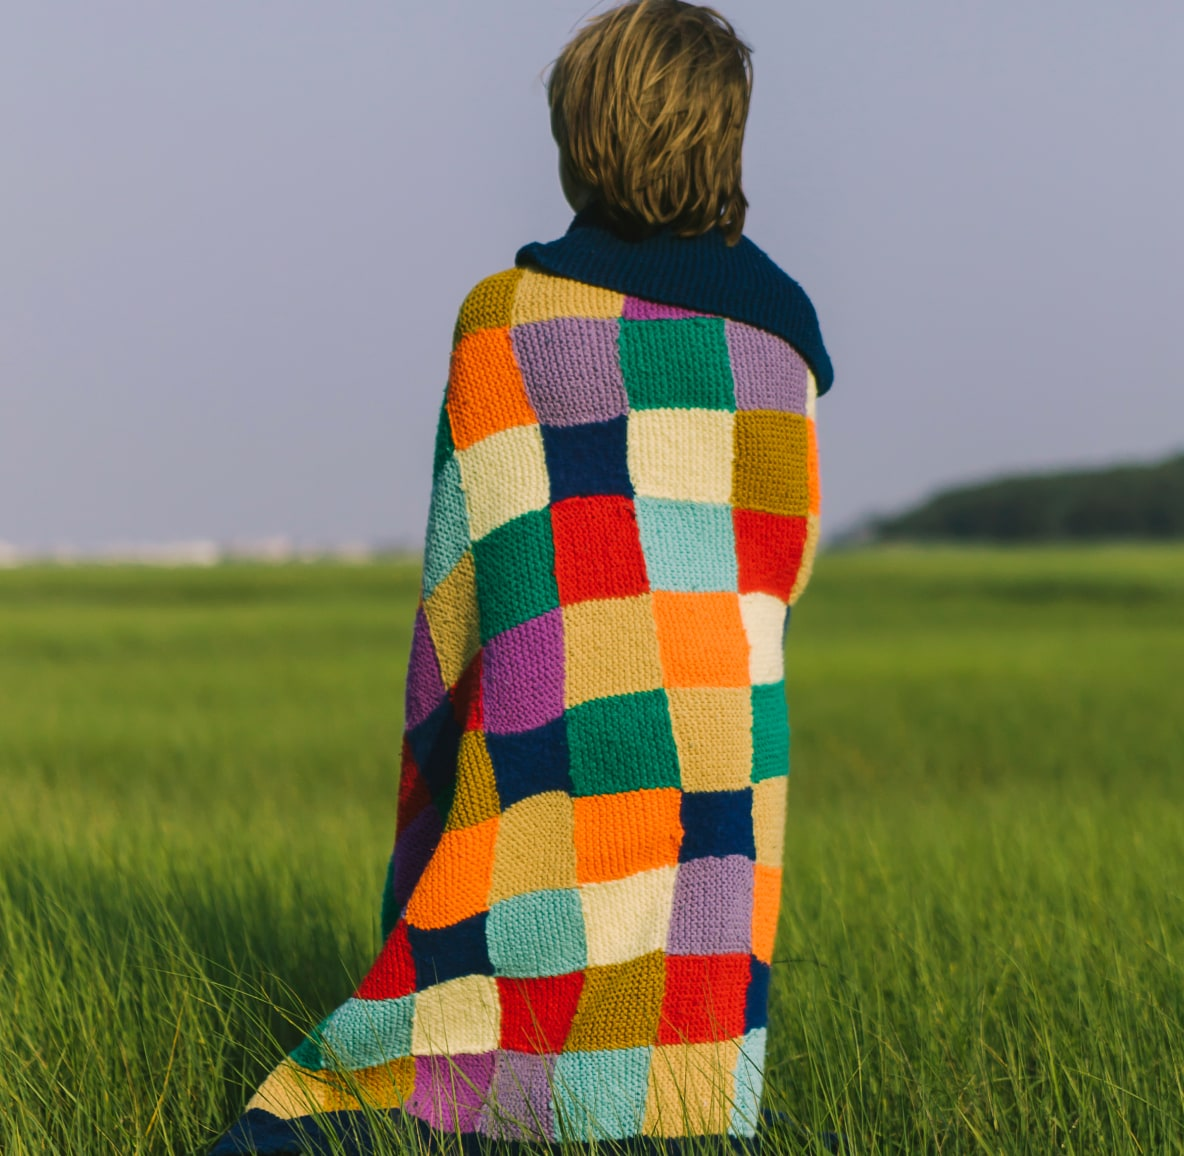 Image of person in a field wrapped in a brightly colored checkered blanket